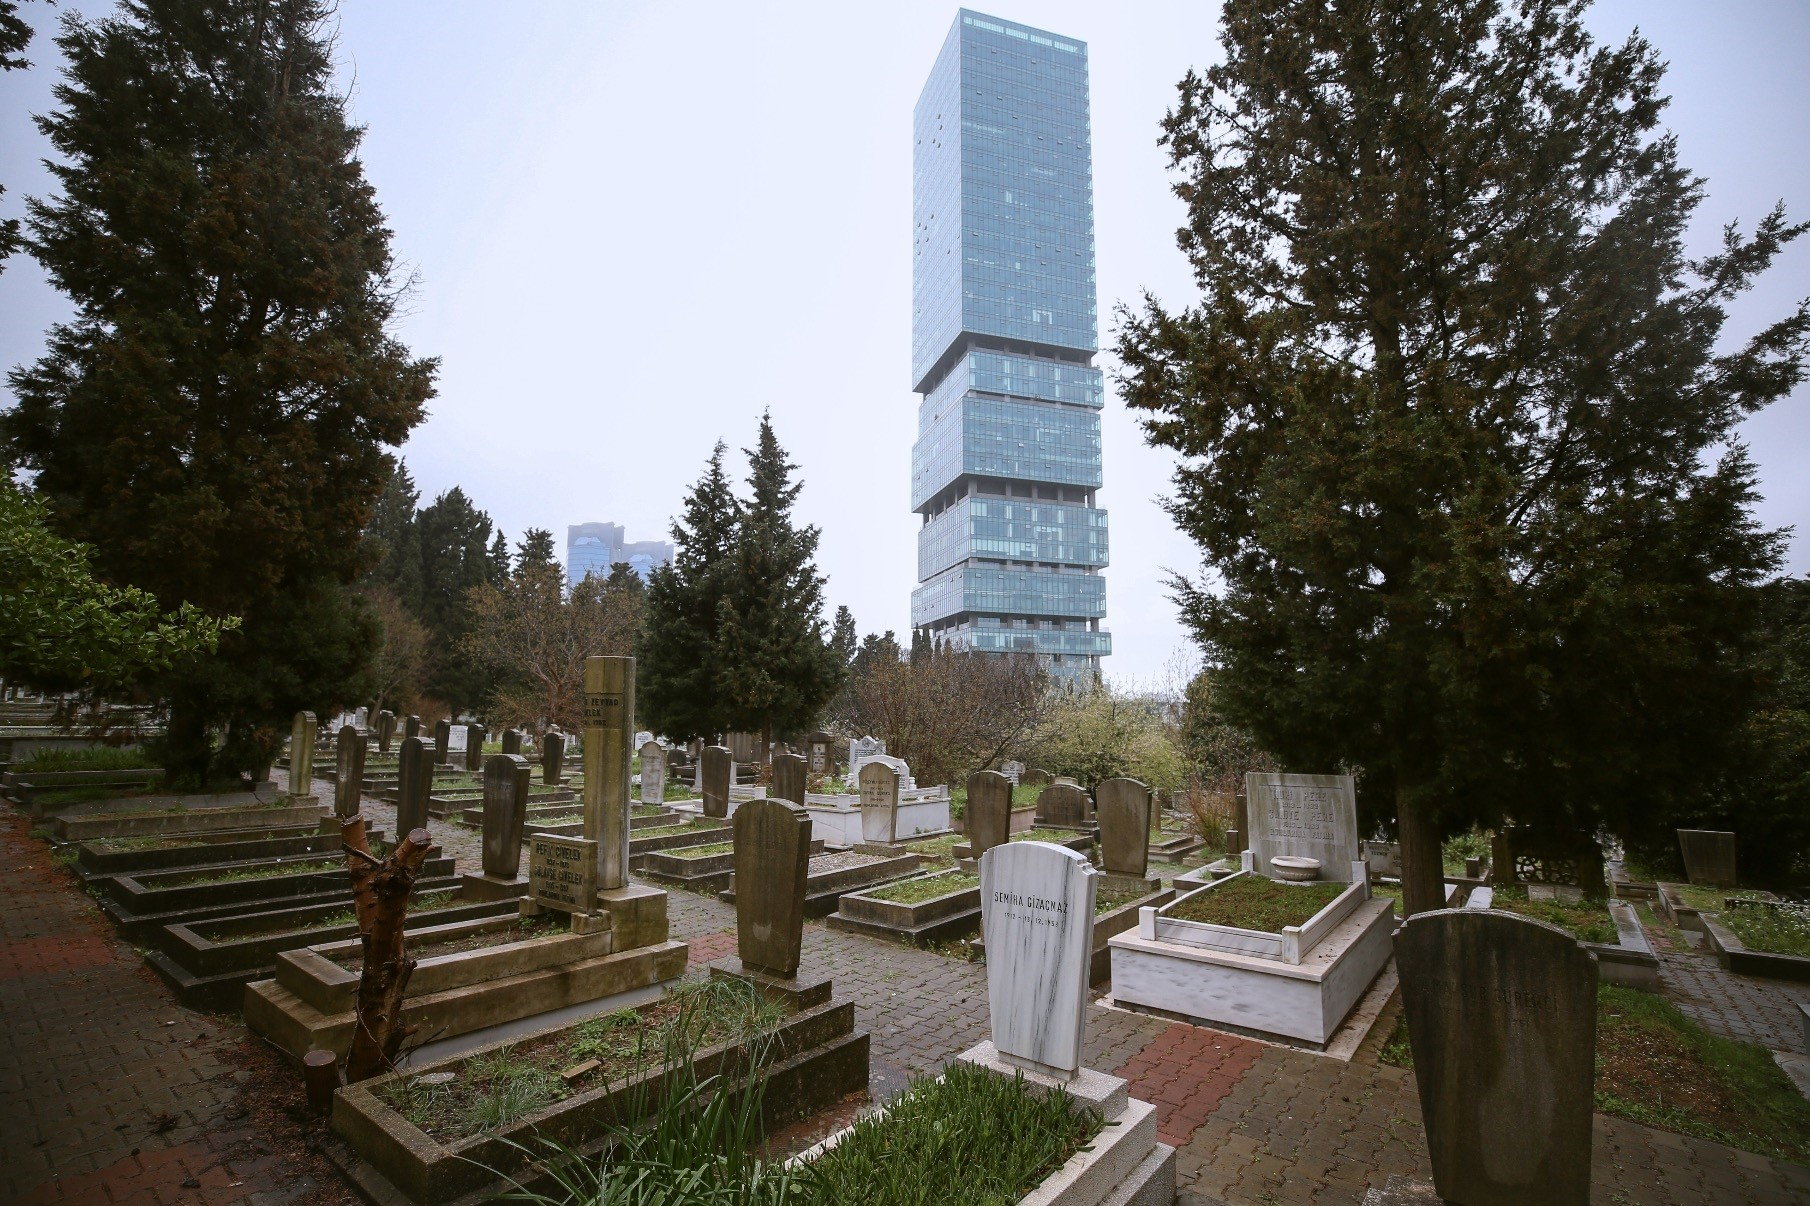 Zincirlikuyu, located in one of the most pricey locations for housing, also is the most expensive cemetery with plot prices surged to TL 25.000.